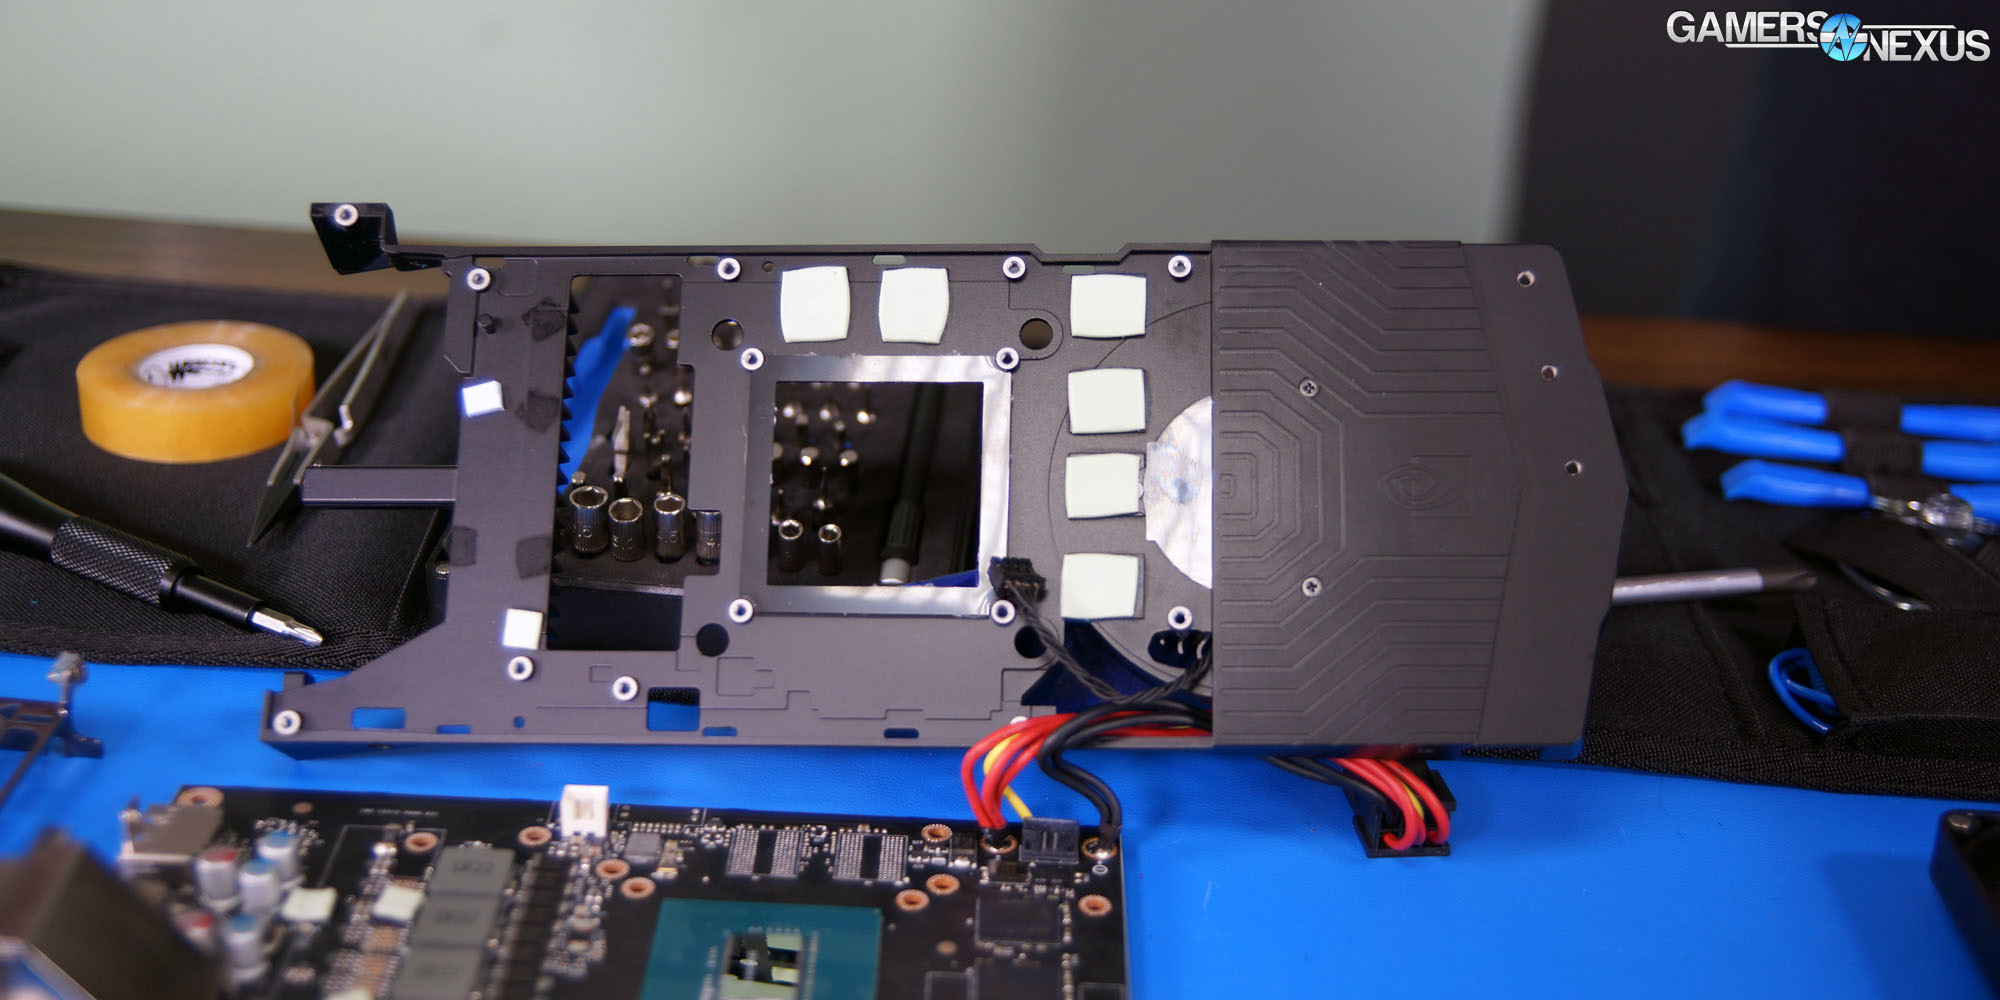 Complete Disassembly of GTX 1060 - The Road to DIY 1060